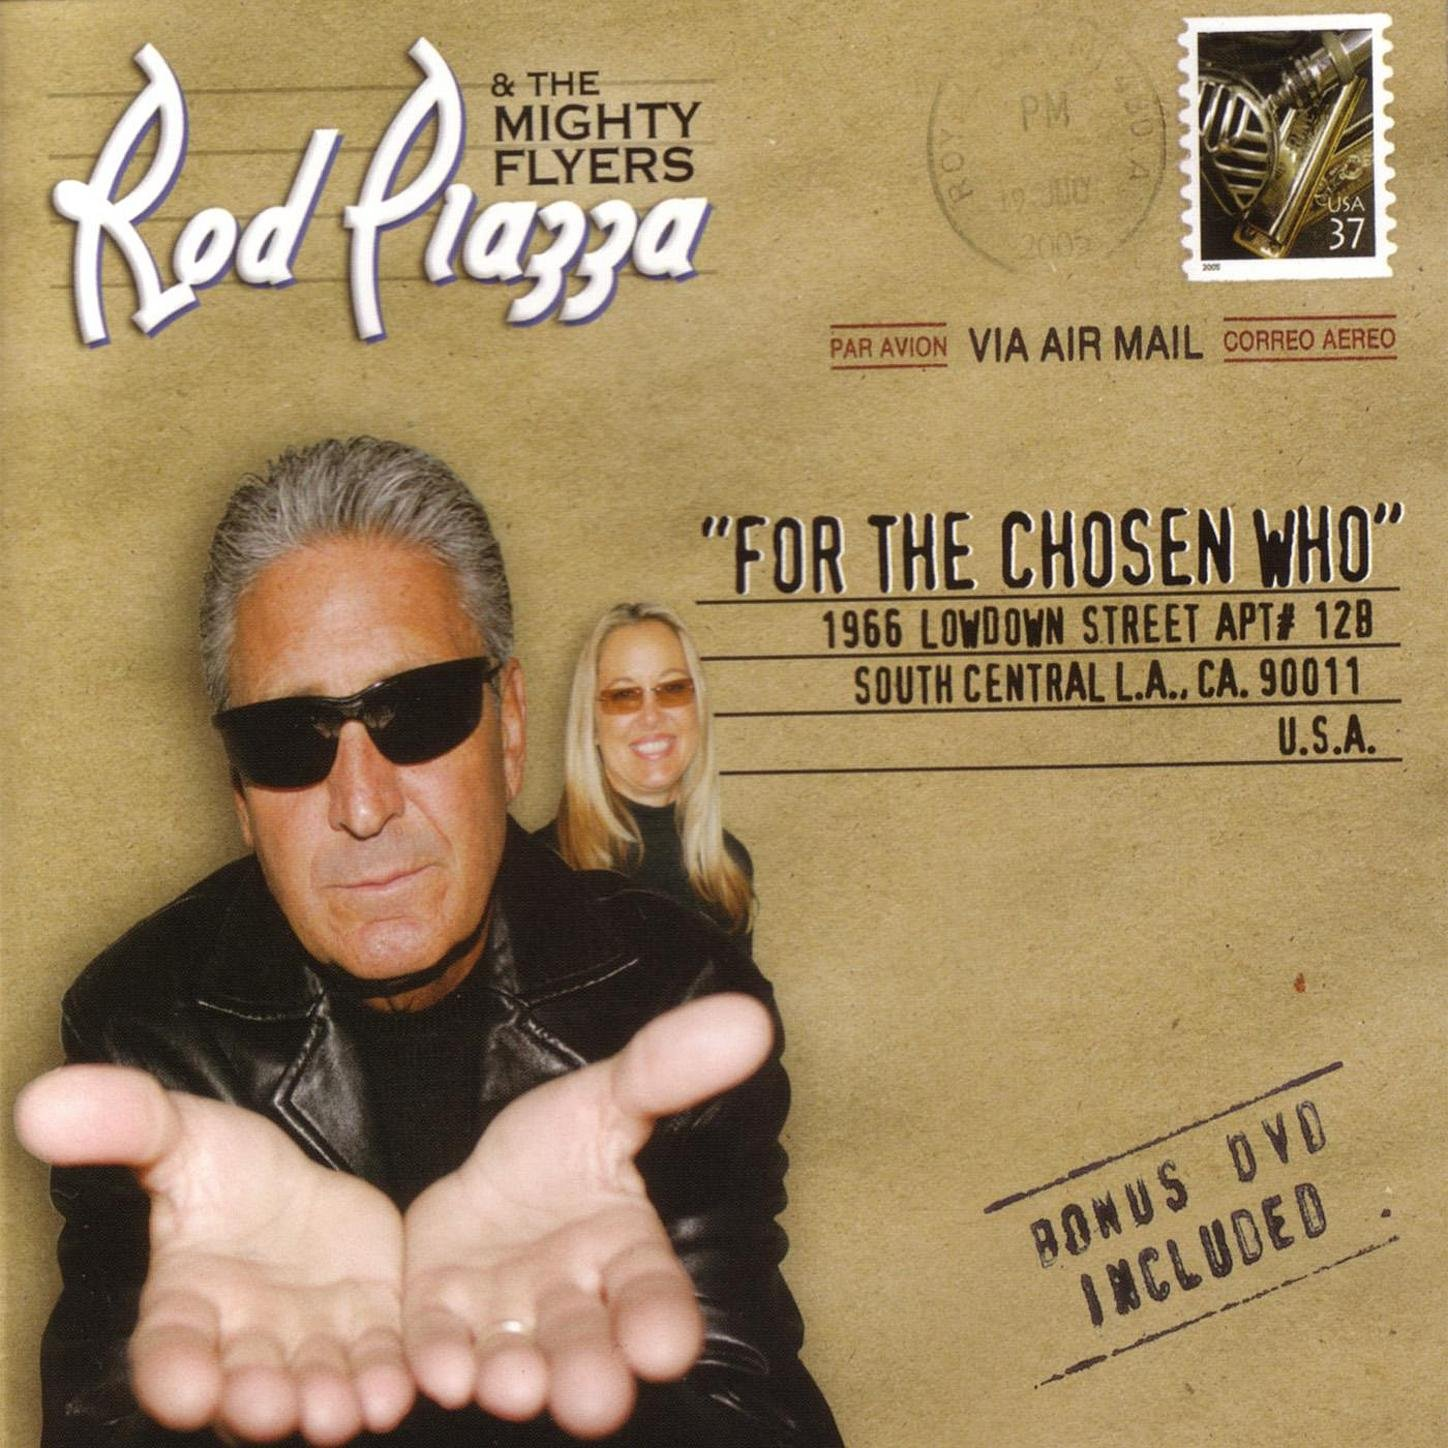 Rod Piazza & The Mighty Flyers - For The Chosen Who (2005) [FLAC] Download